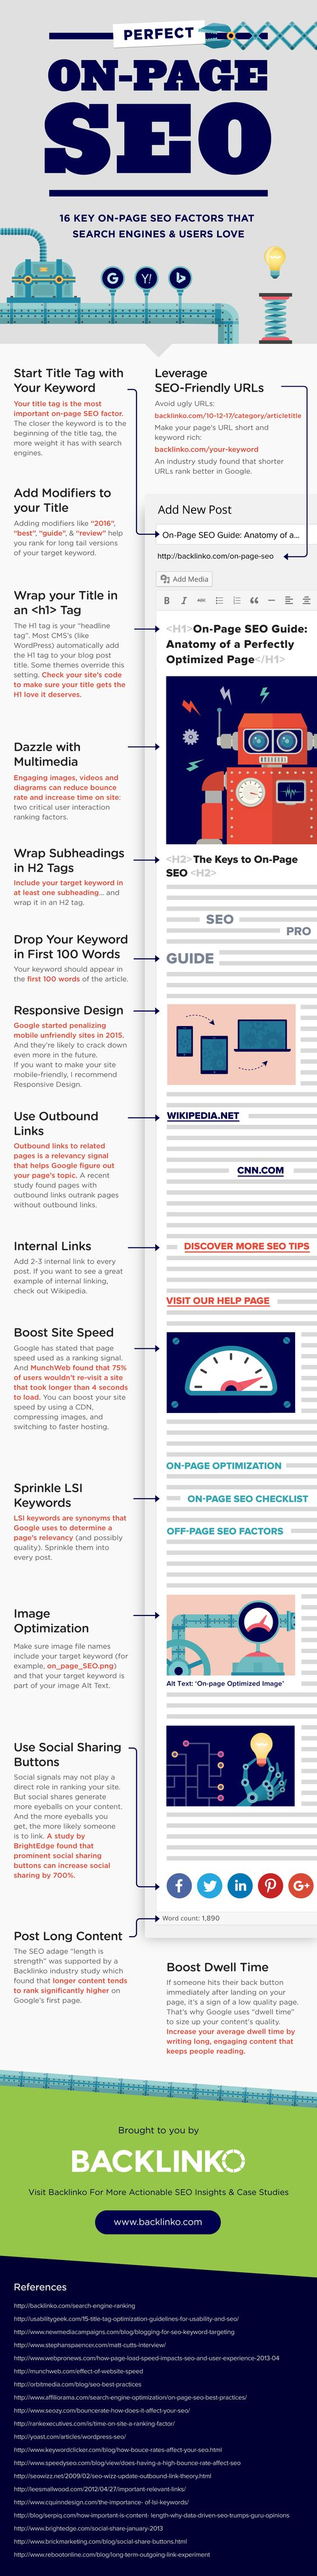 Infographic Image for On-Page SEO Checklist